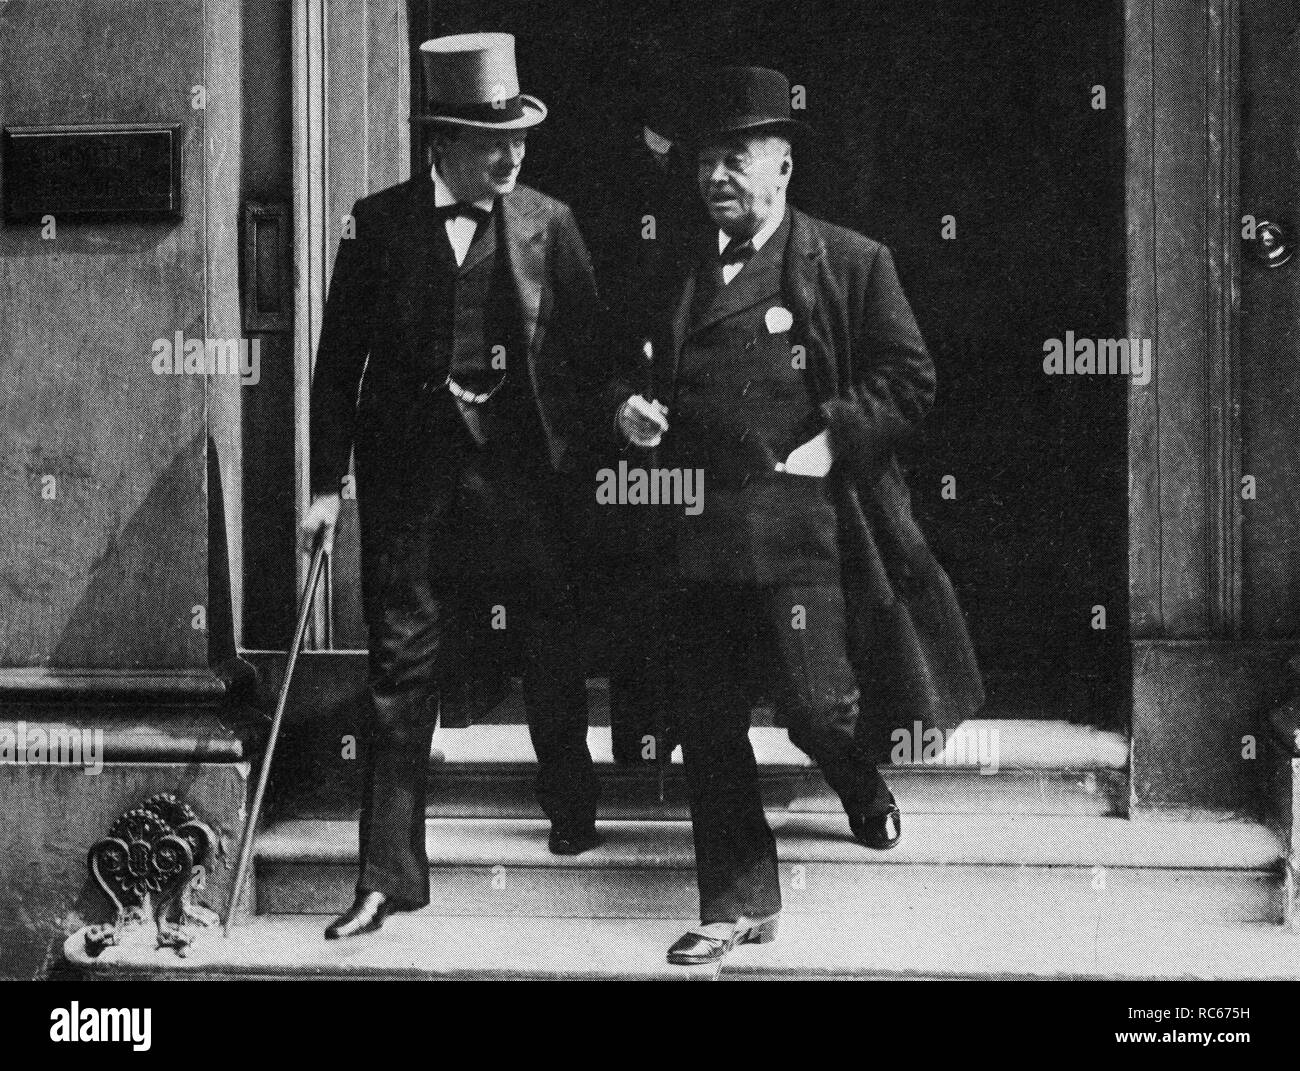 Winston Churchill and Lord Fisher leaving a meeting of the Committee of Imperial Defence in 1913 - Stock Image